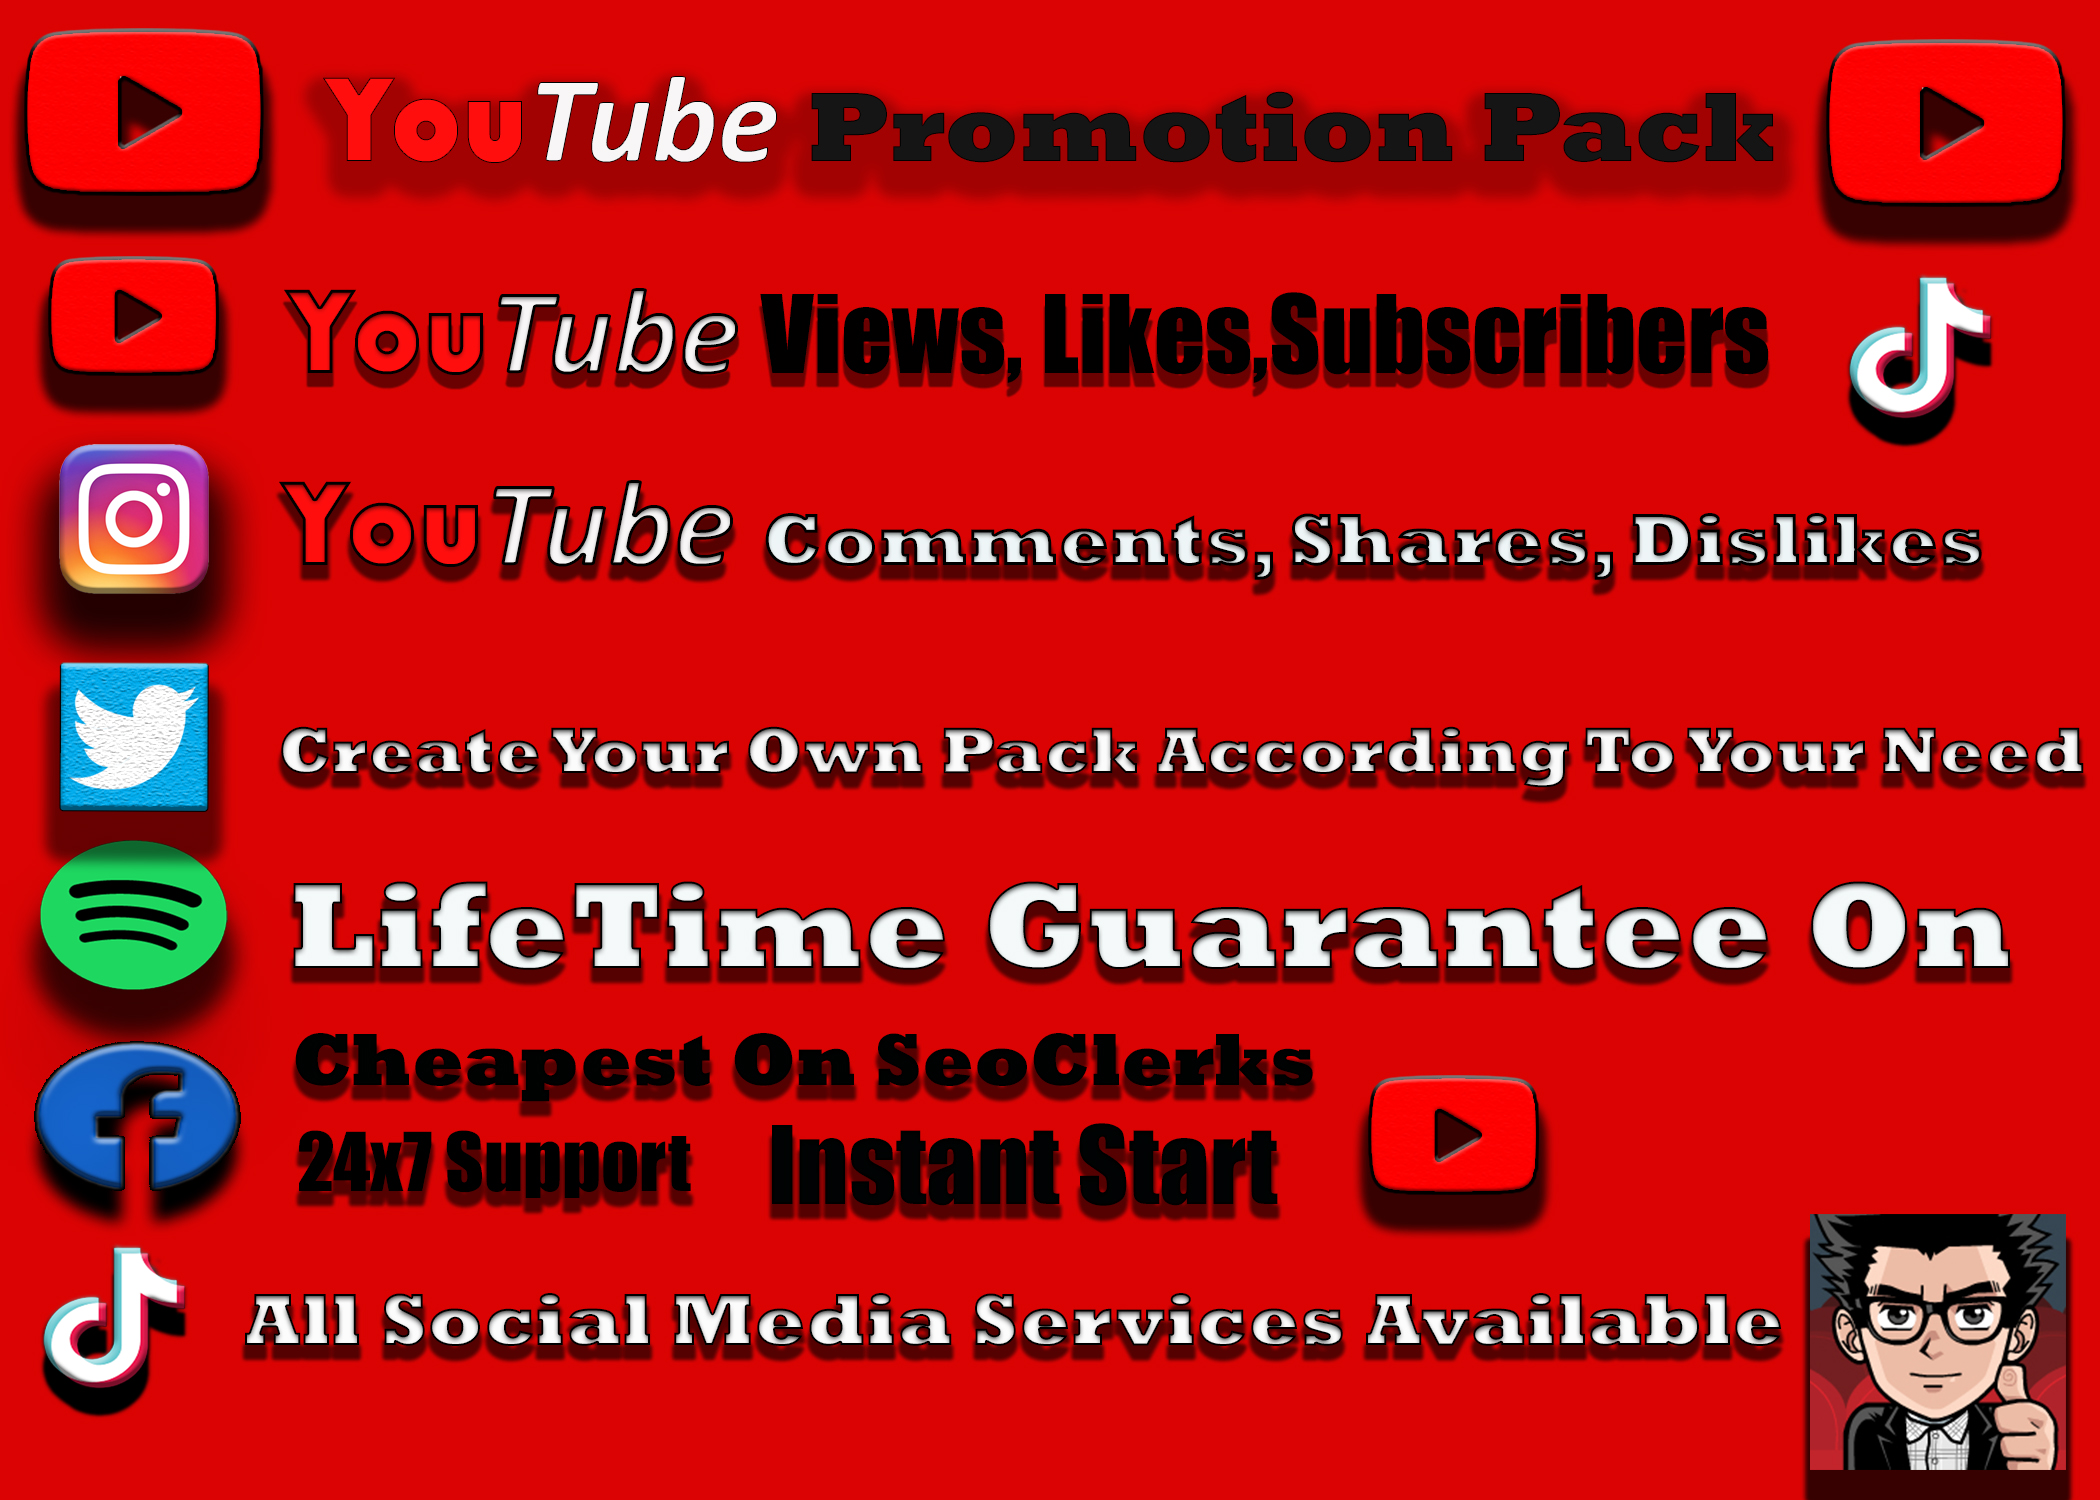 Real Organic YouTube Video Promotions. 1k 6-24 hr Delivery